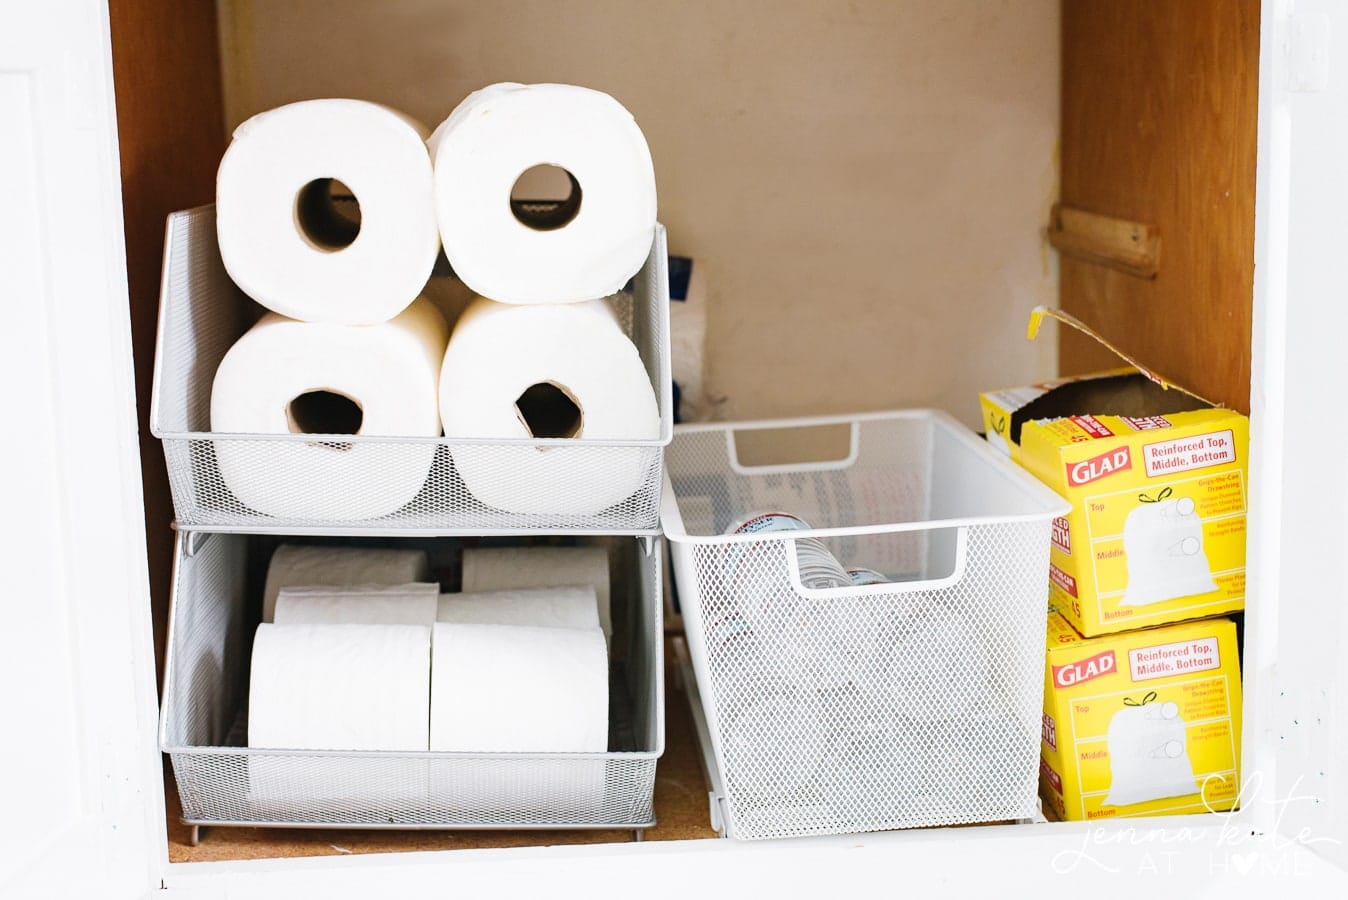 organization ideas for paper towels and toilet paper